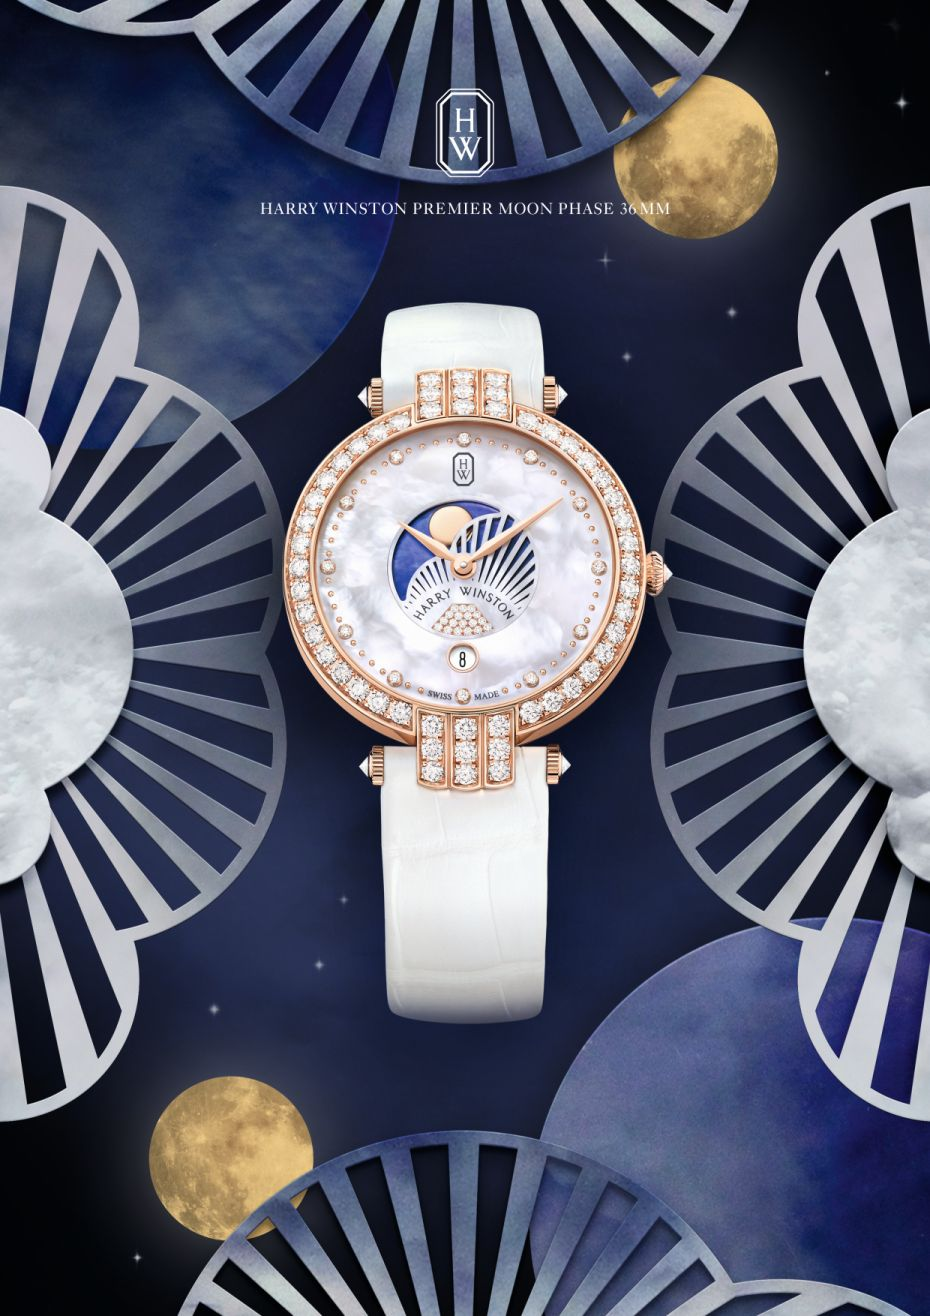 Harry-Winston-Premier-Moonphase-36-1.jpg